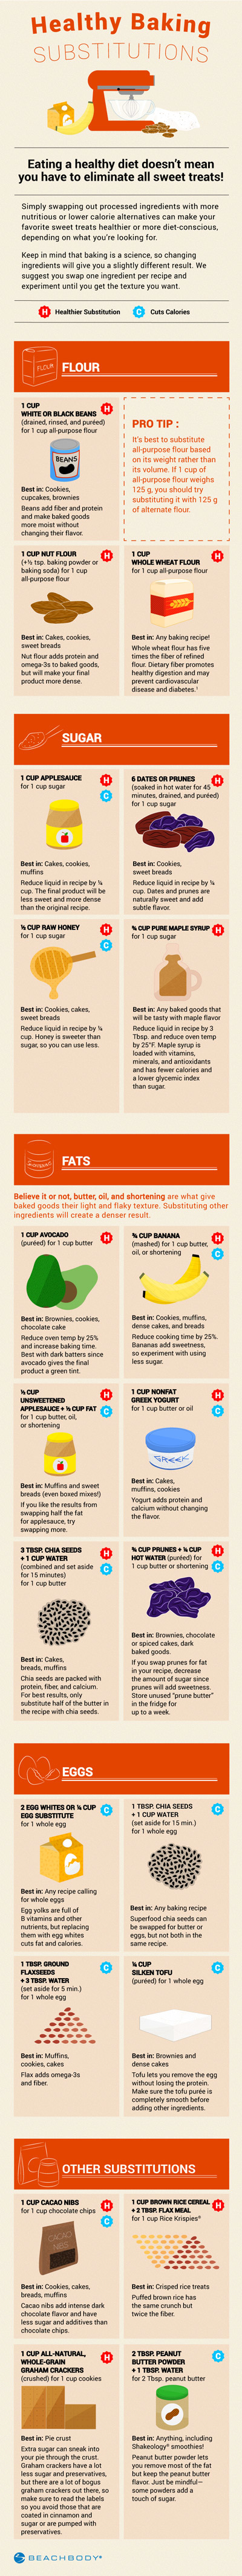 Beachbody-Blog-Healthy-Baking-Substitutions.jpg